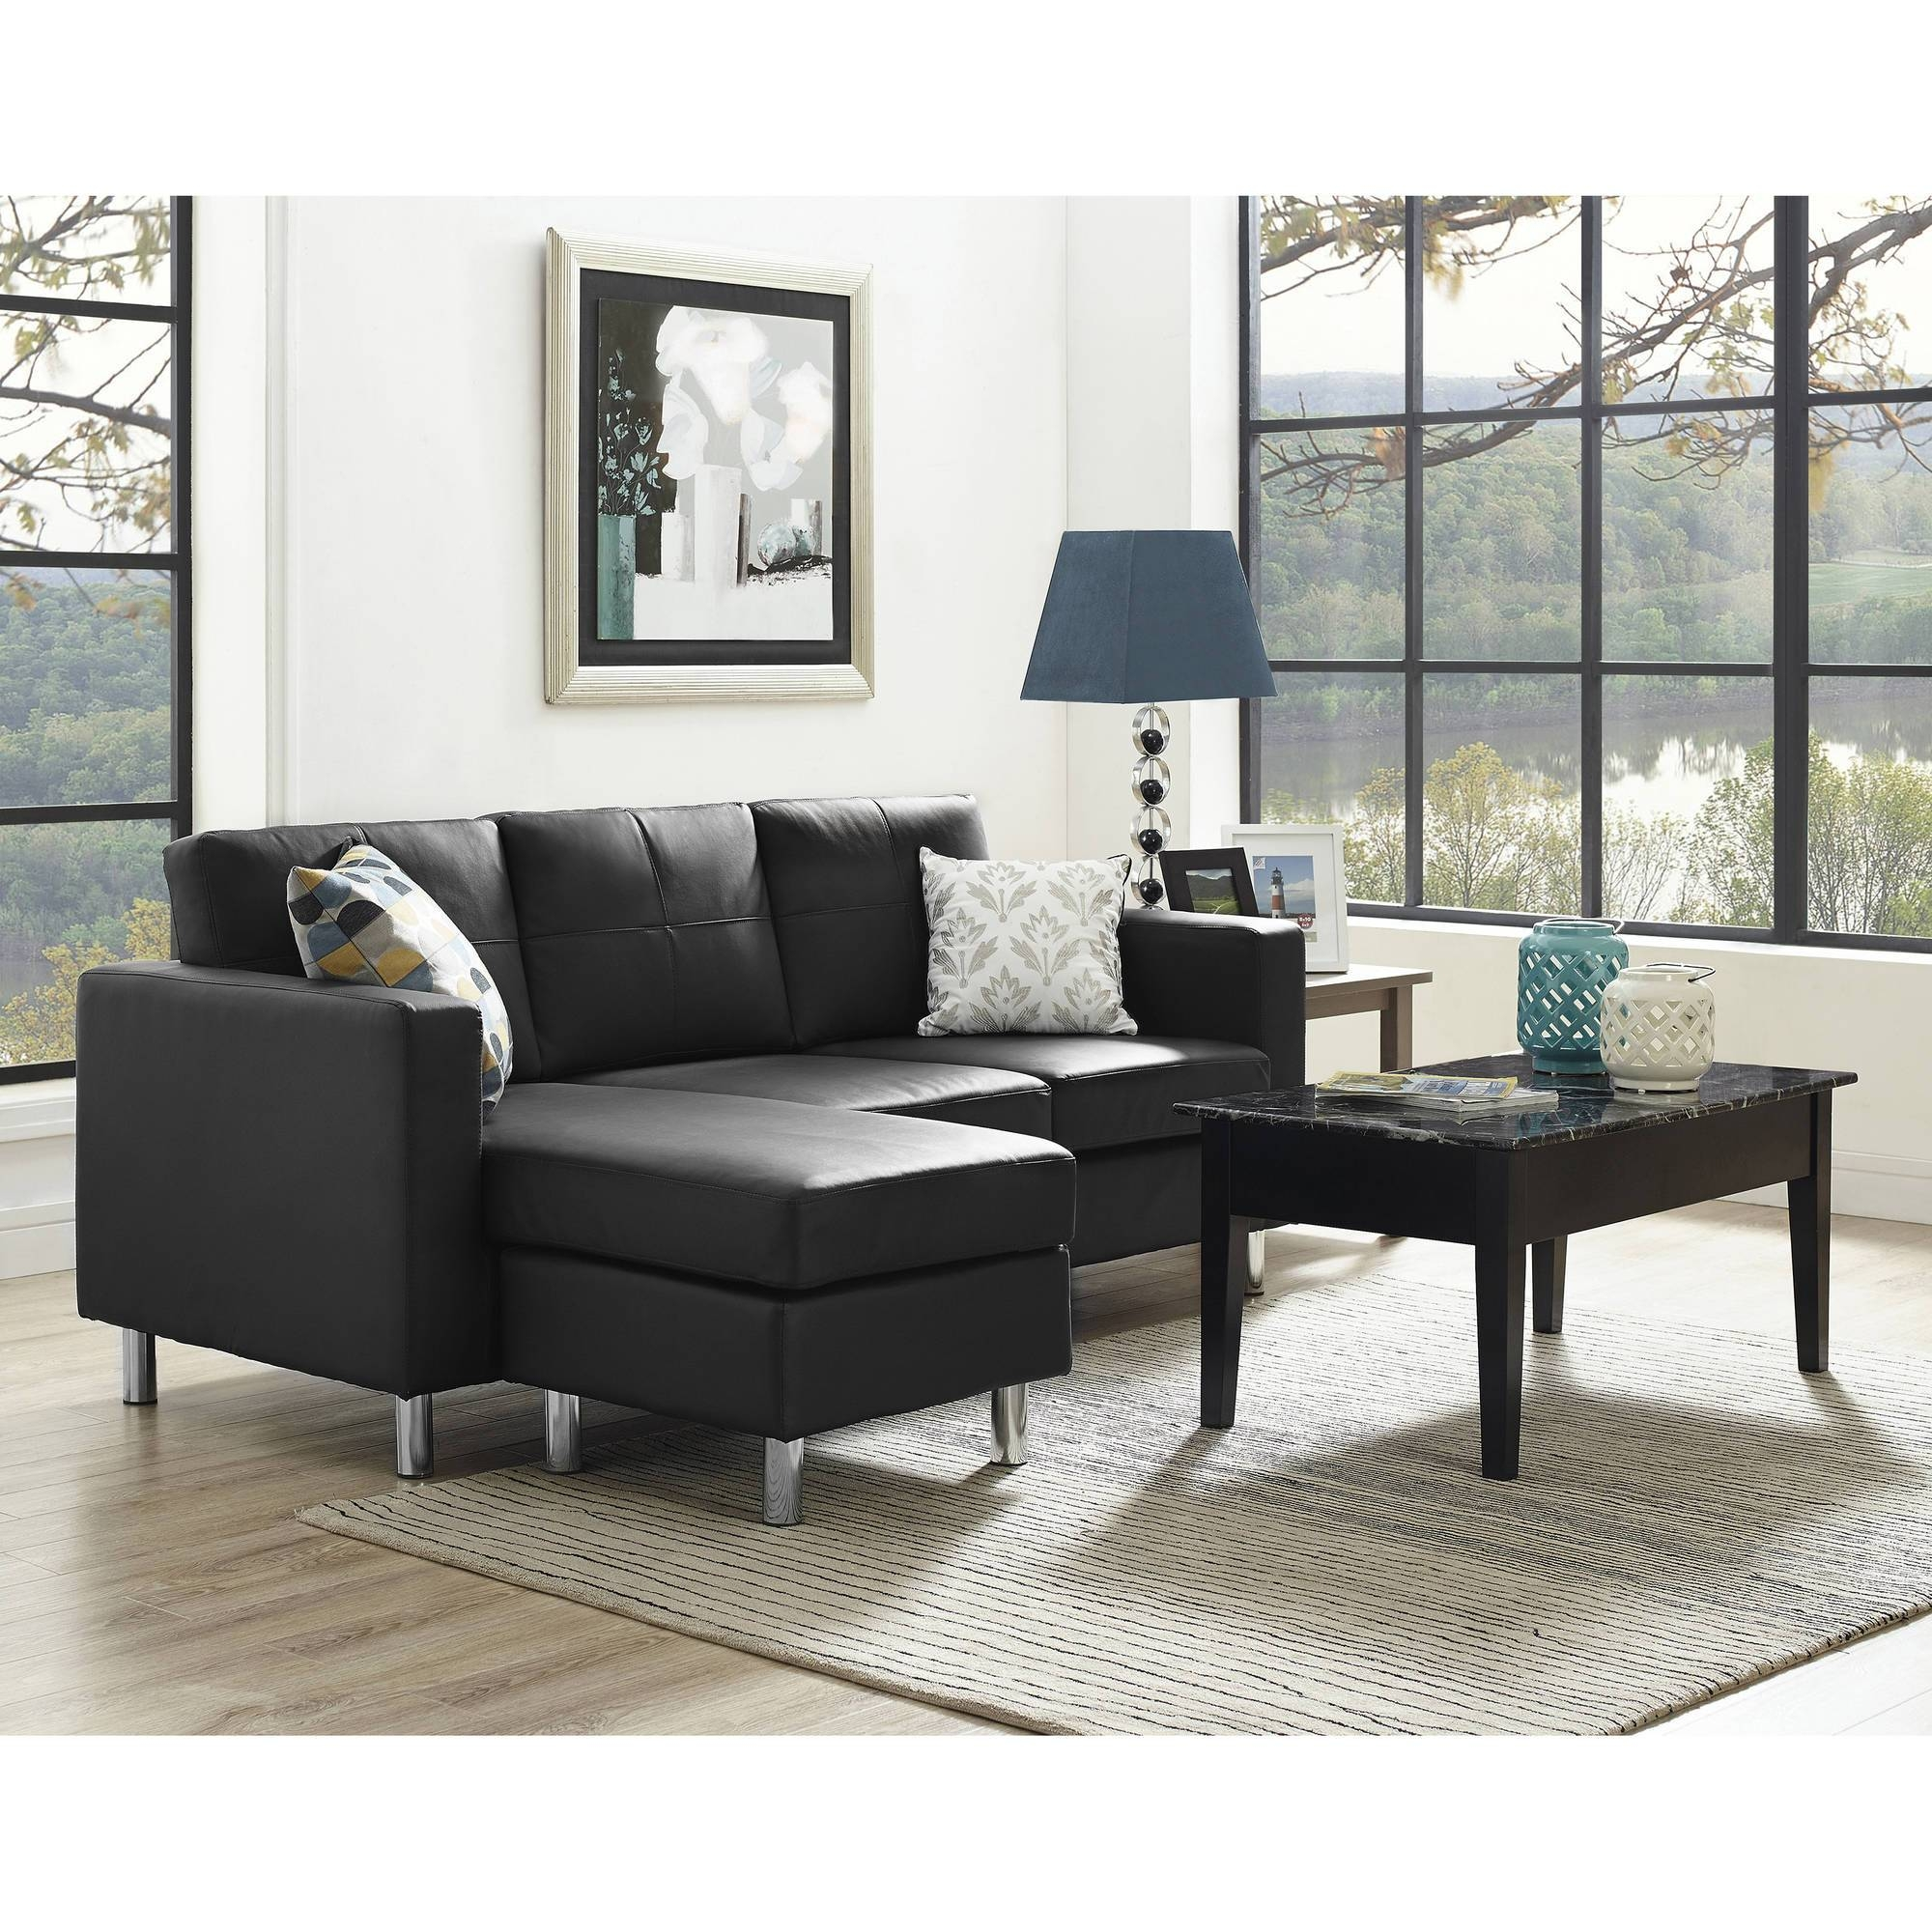 Dorel Living Small Spaces Configurable Sectional Sofa, Multiple inside Small Sectional Sofa (Image 9 of 30)